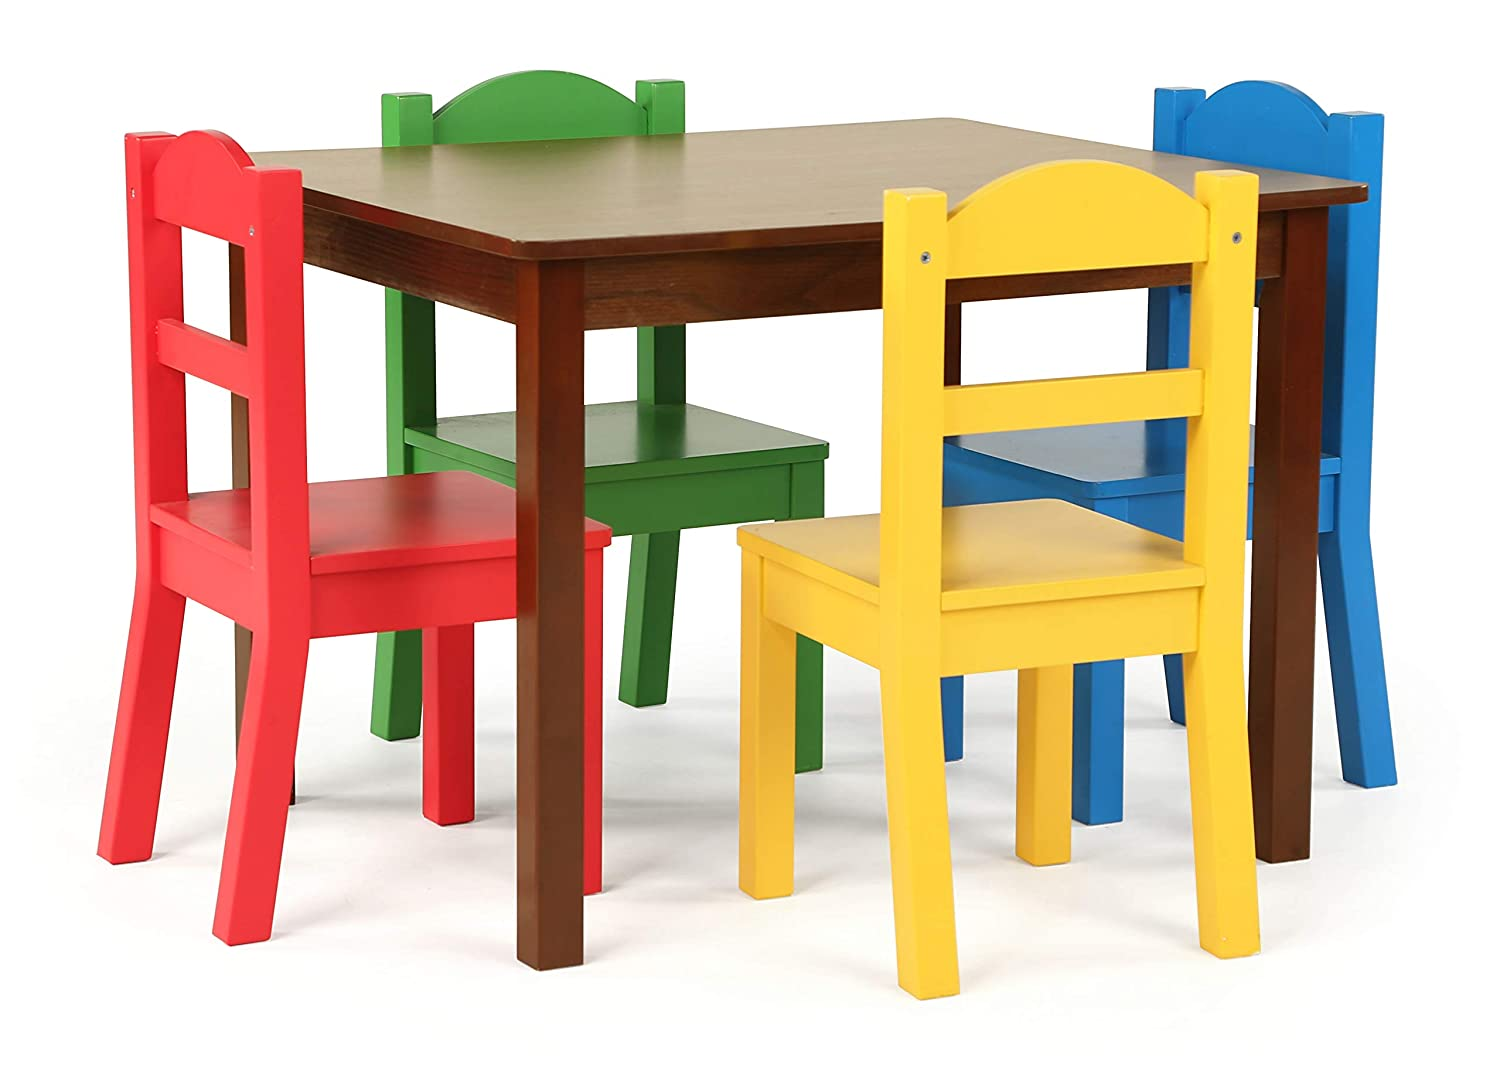 Tot Tutors TC437 Kids Wood Table & 4 Chair Set, Red/Blue/Green/Yellow, Espresso/Primary